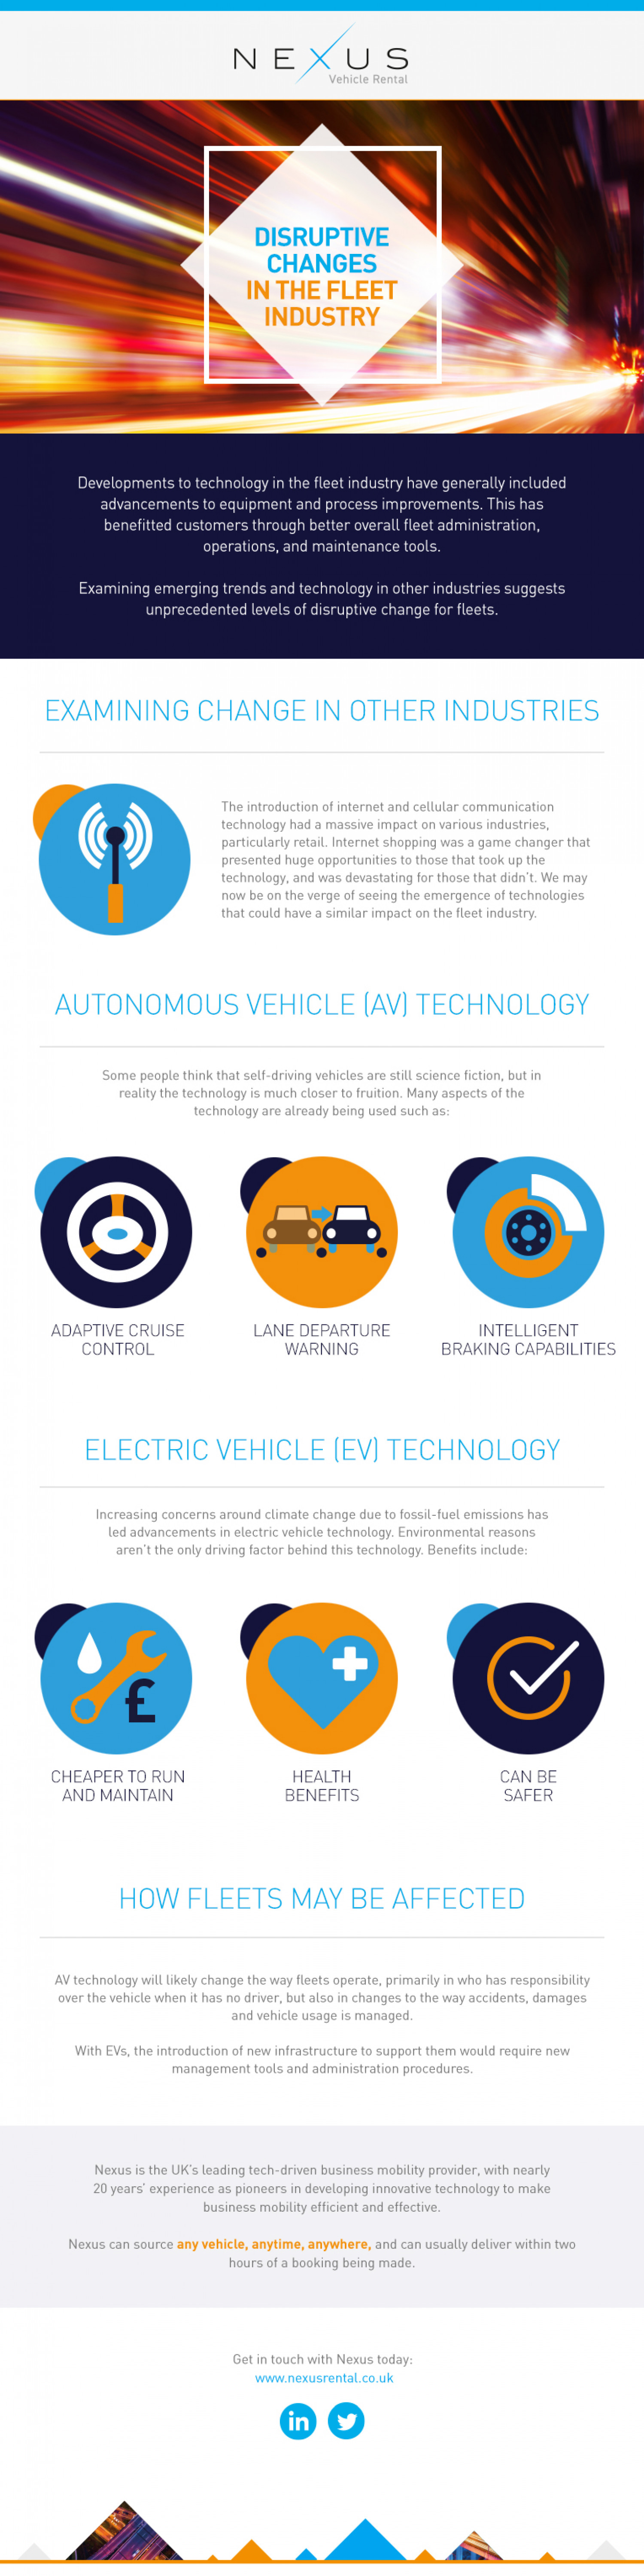 Disruptive Changes in the Fleet Industry Infographic